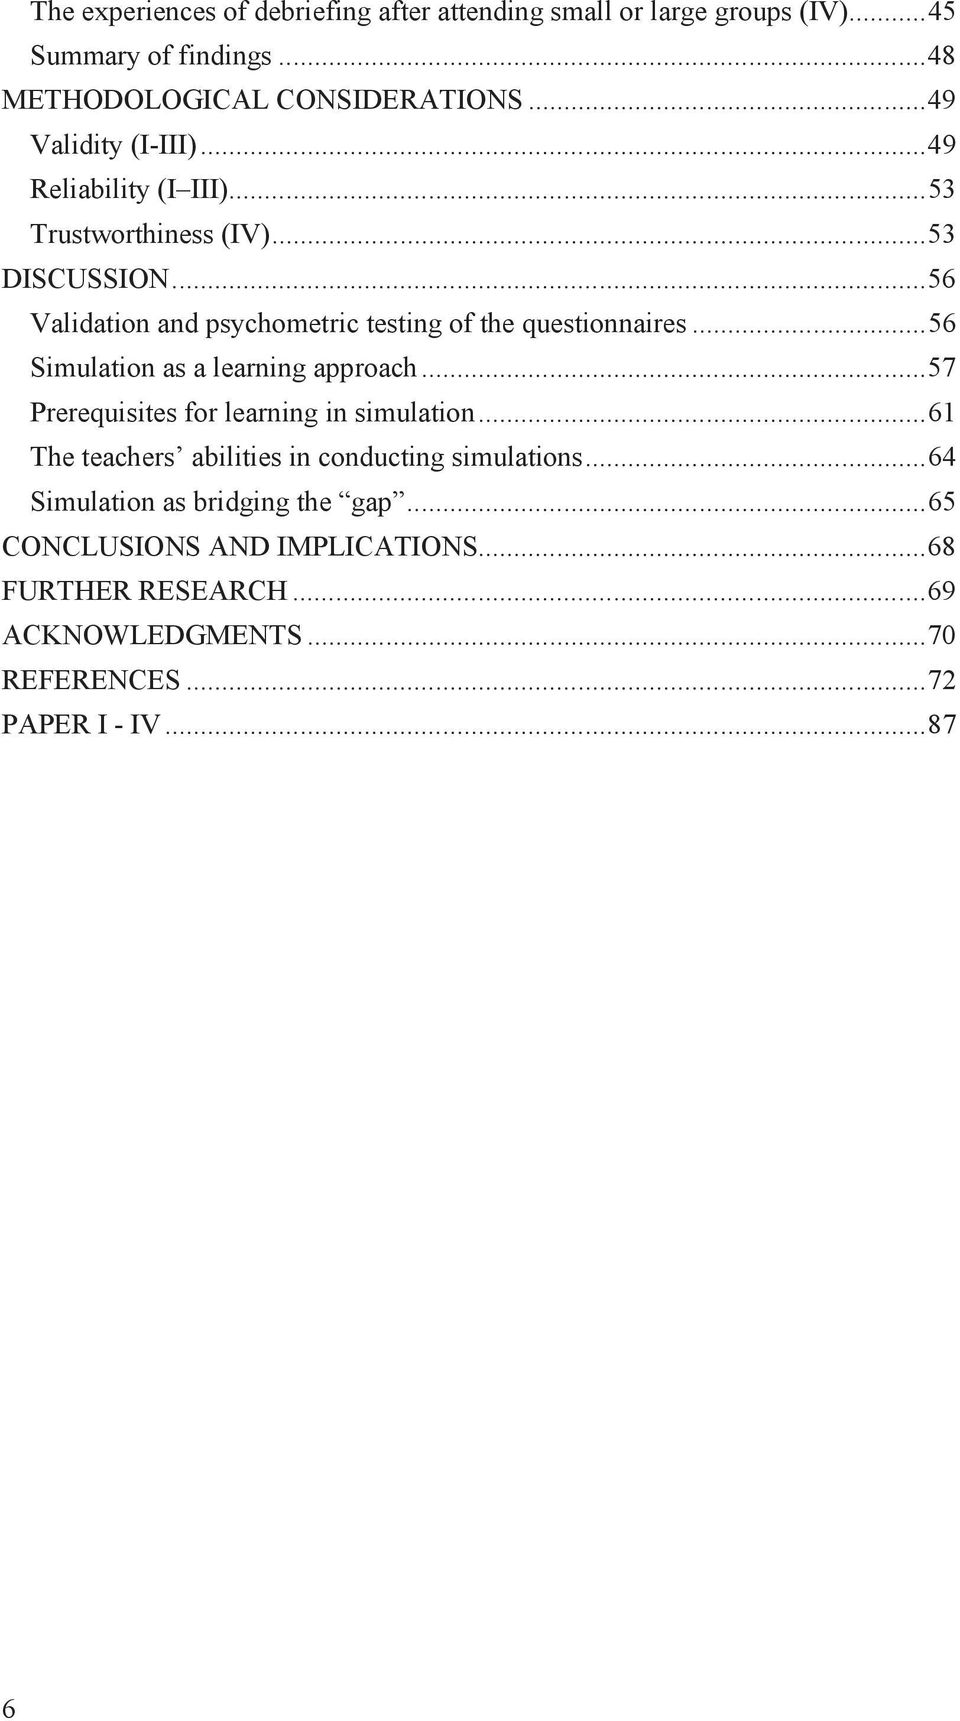 .. 56 Validation and psychometric testing of the questionnaires... 56 Simulation as a learning approach... 57 Prerequisites for learning in simulation.